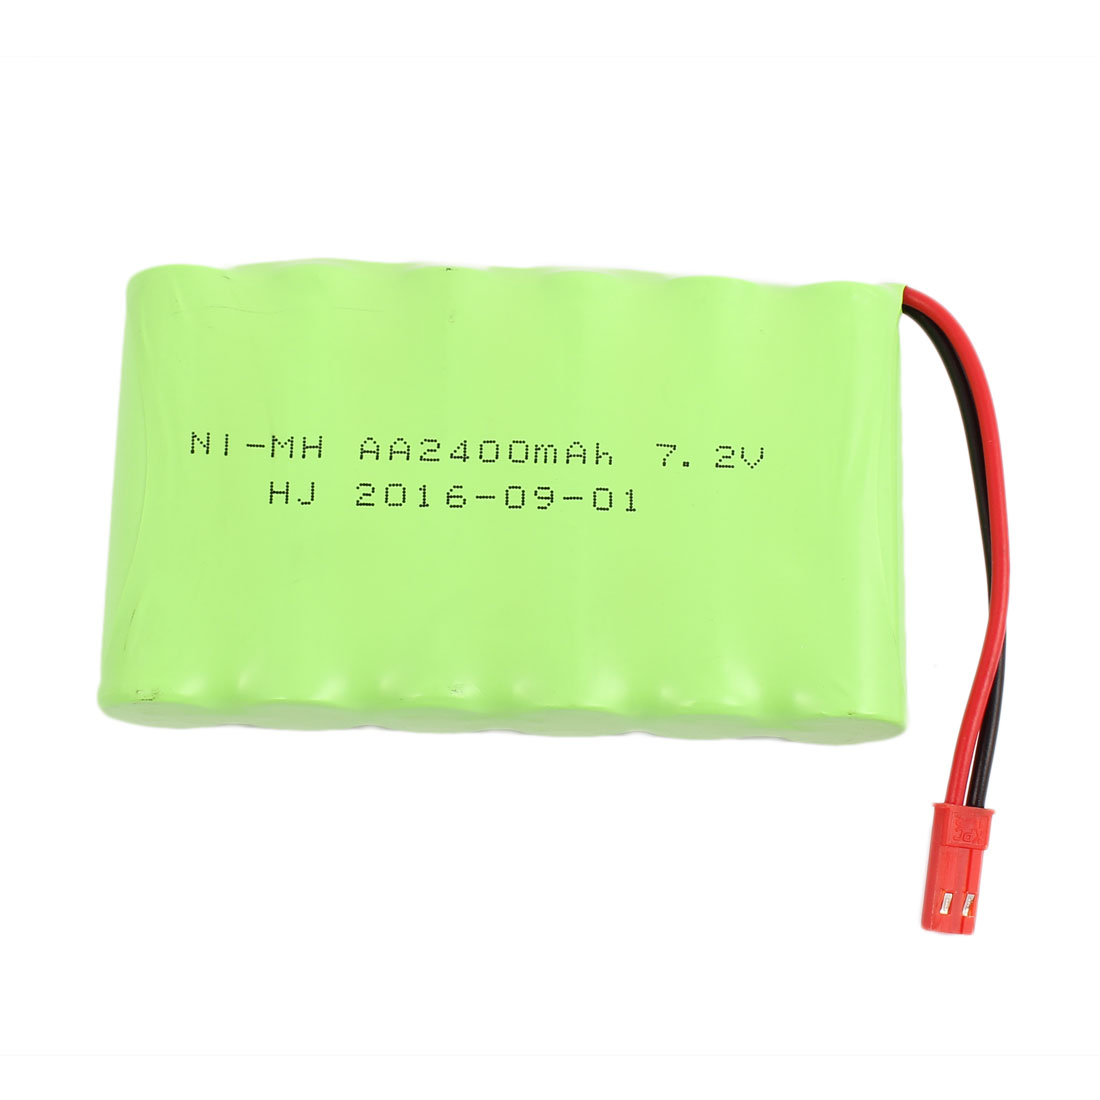 7.2V 2400mAh Charging Lithium Polymer Li-po Battery JST-2P Connector for RC Airplane Aircraft